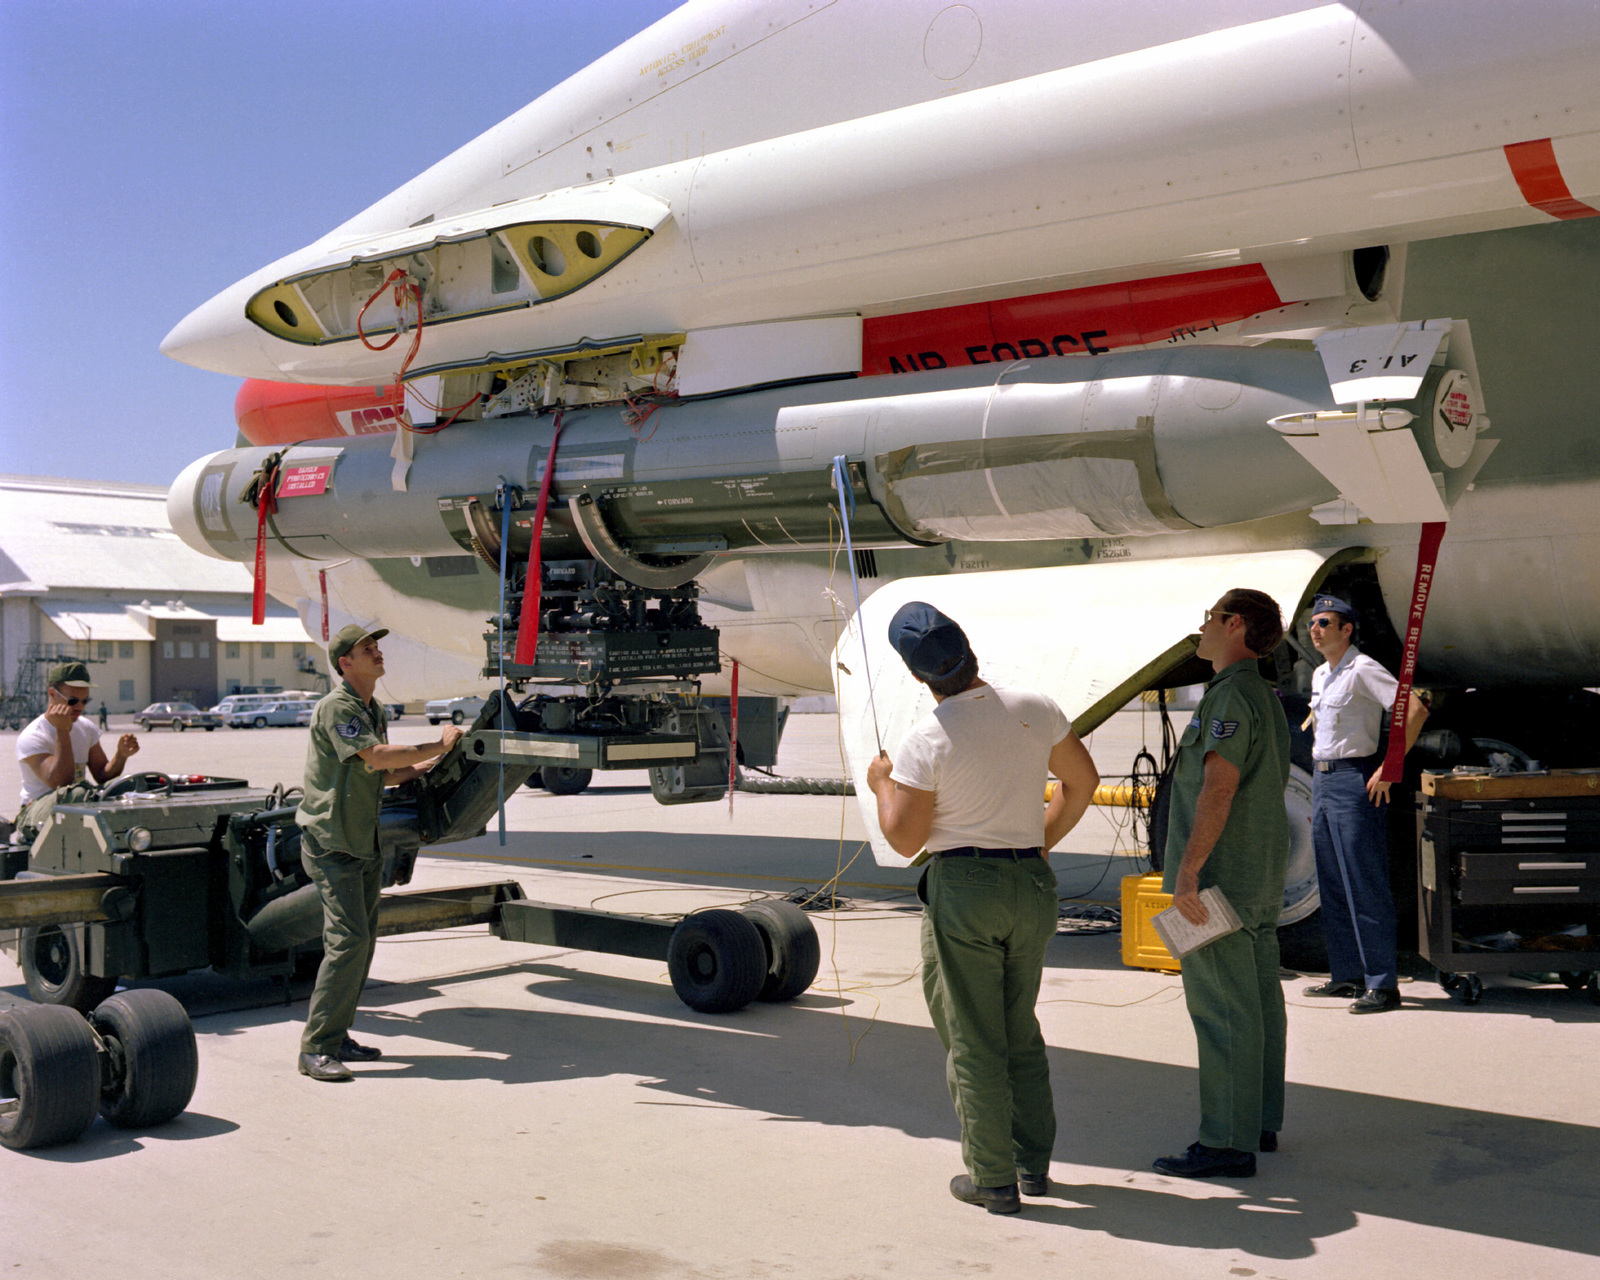 A ground crew loads an AGM-109 Tomahawk air-launched cruise missile on a B-52 Stratofortress aircraft